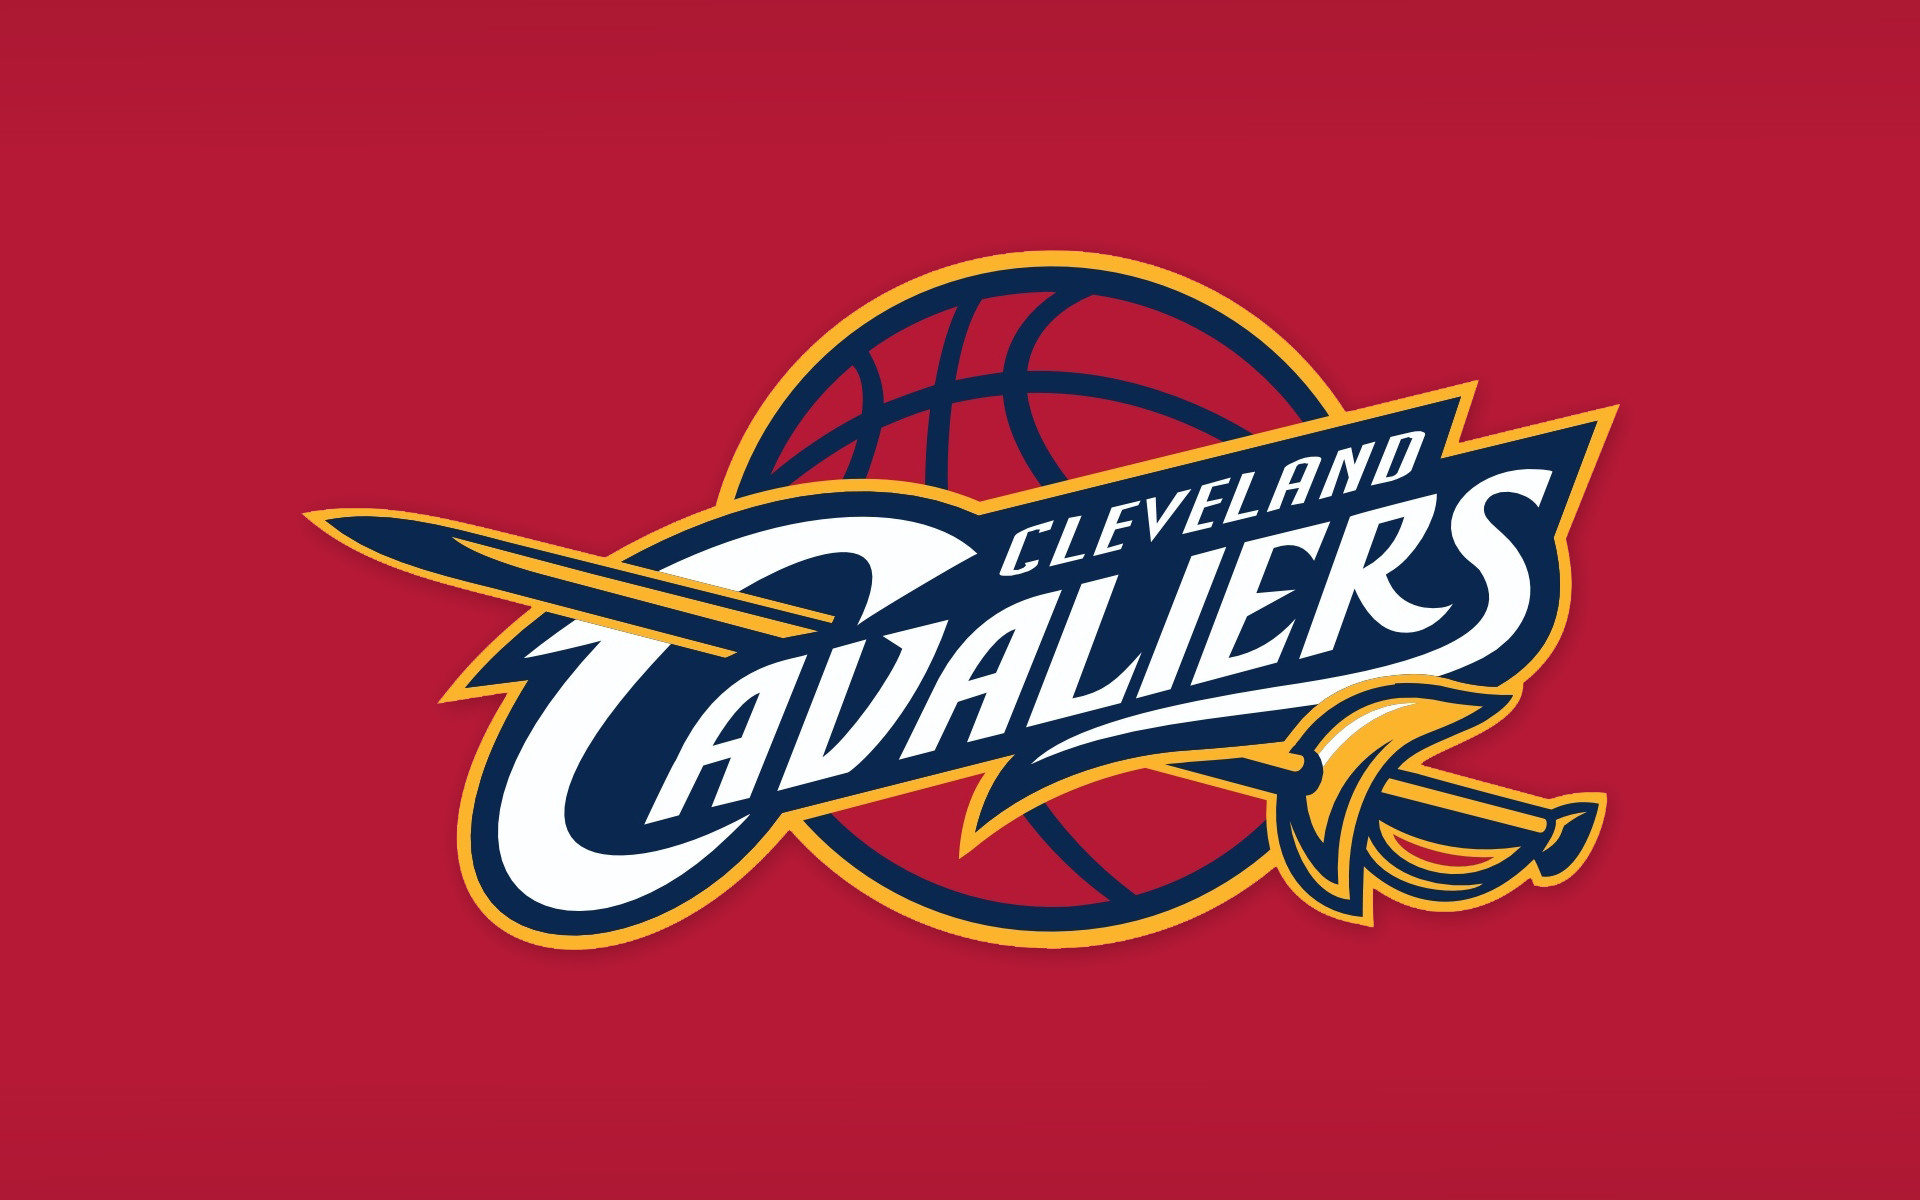 Cleveland Cavaliers Wiki >> Kyrie Irving Logo Wallpapers (77+ images)